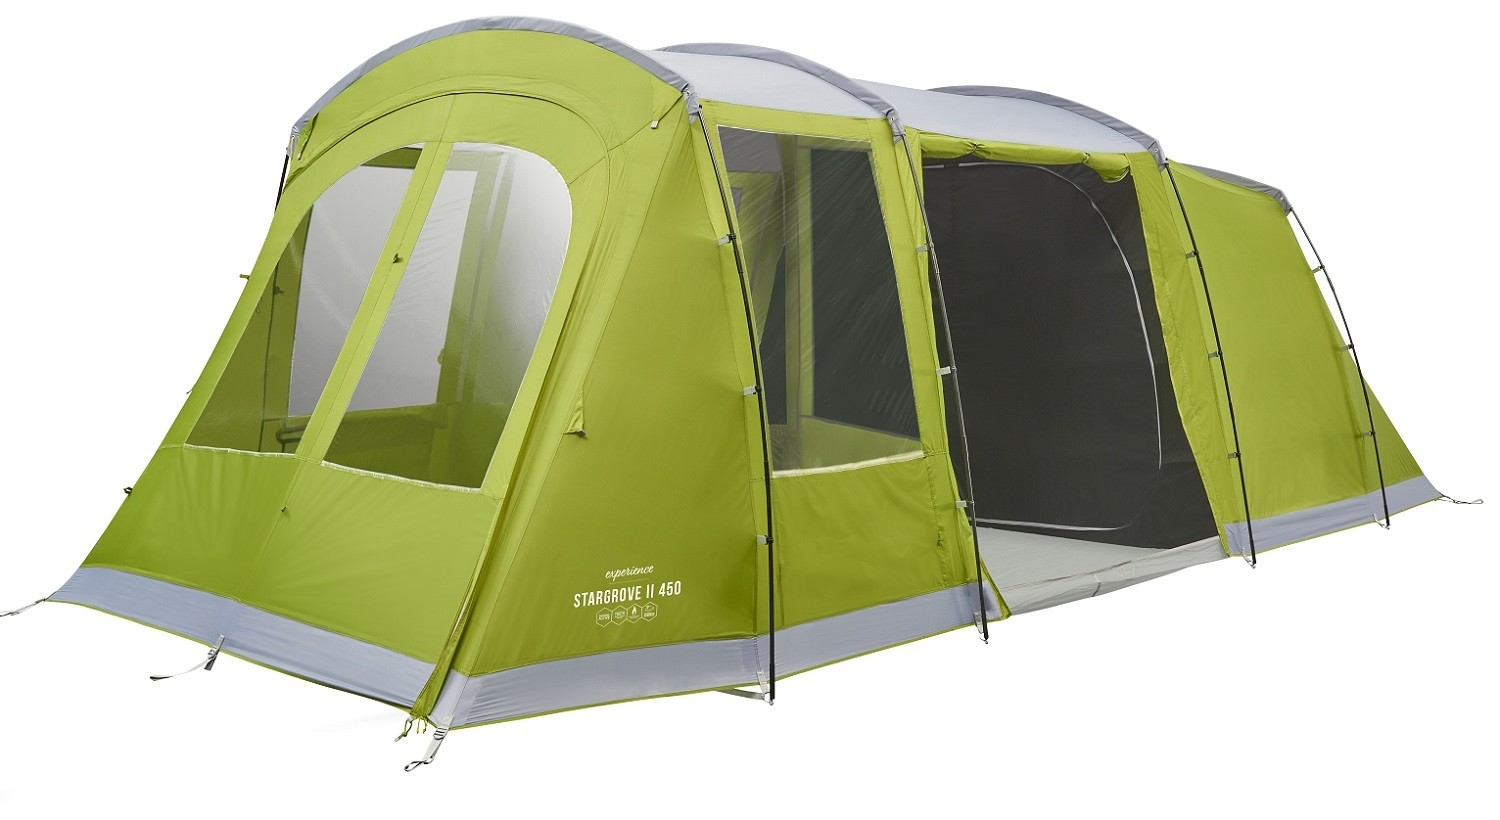 Instant family tent for all the camping fun! Discussed with details